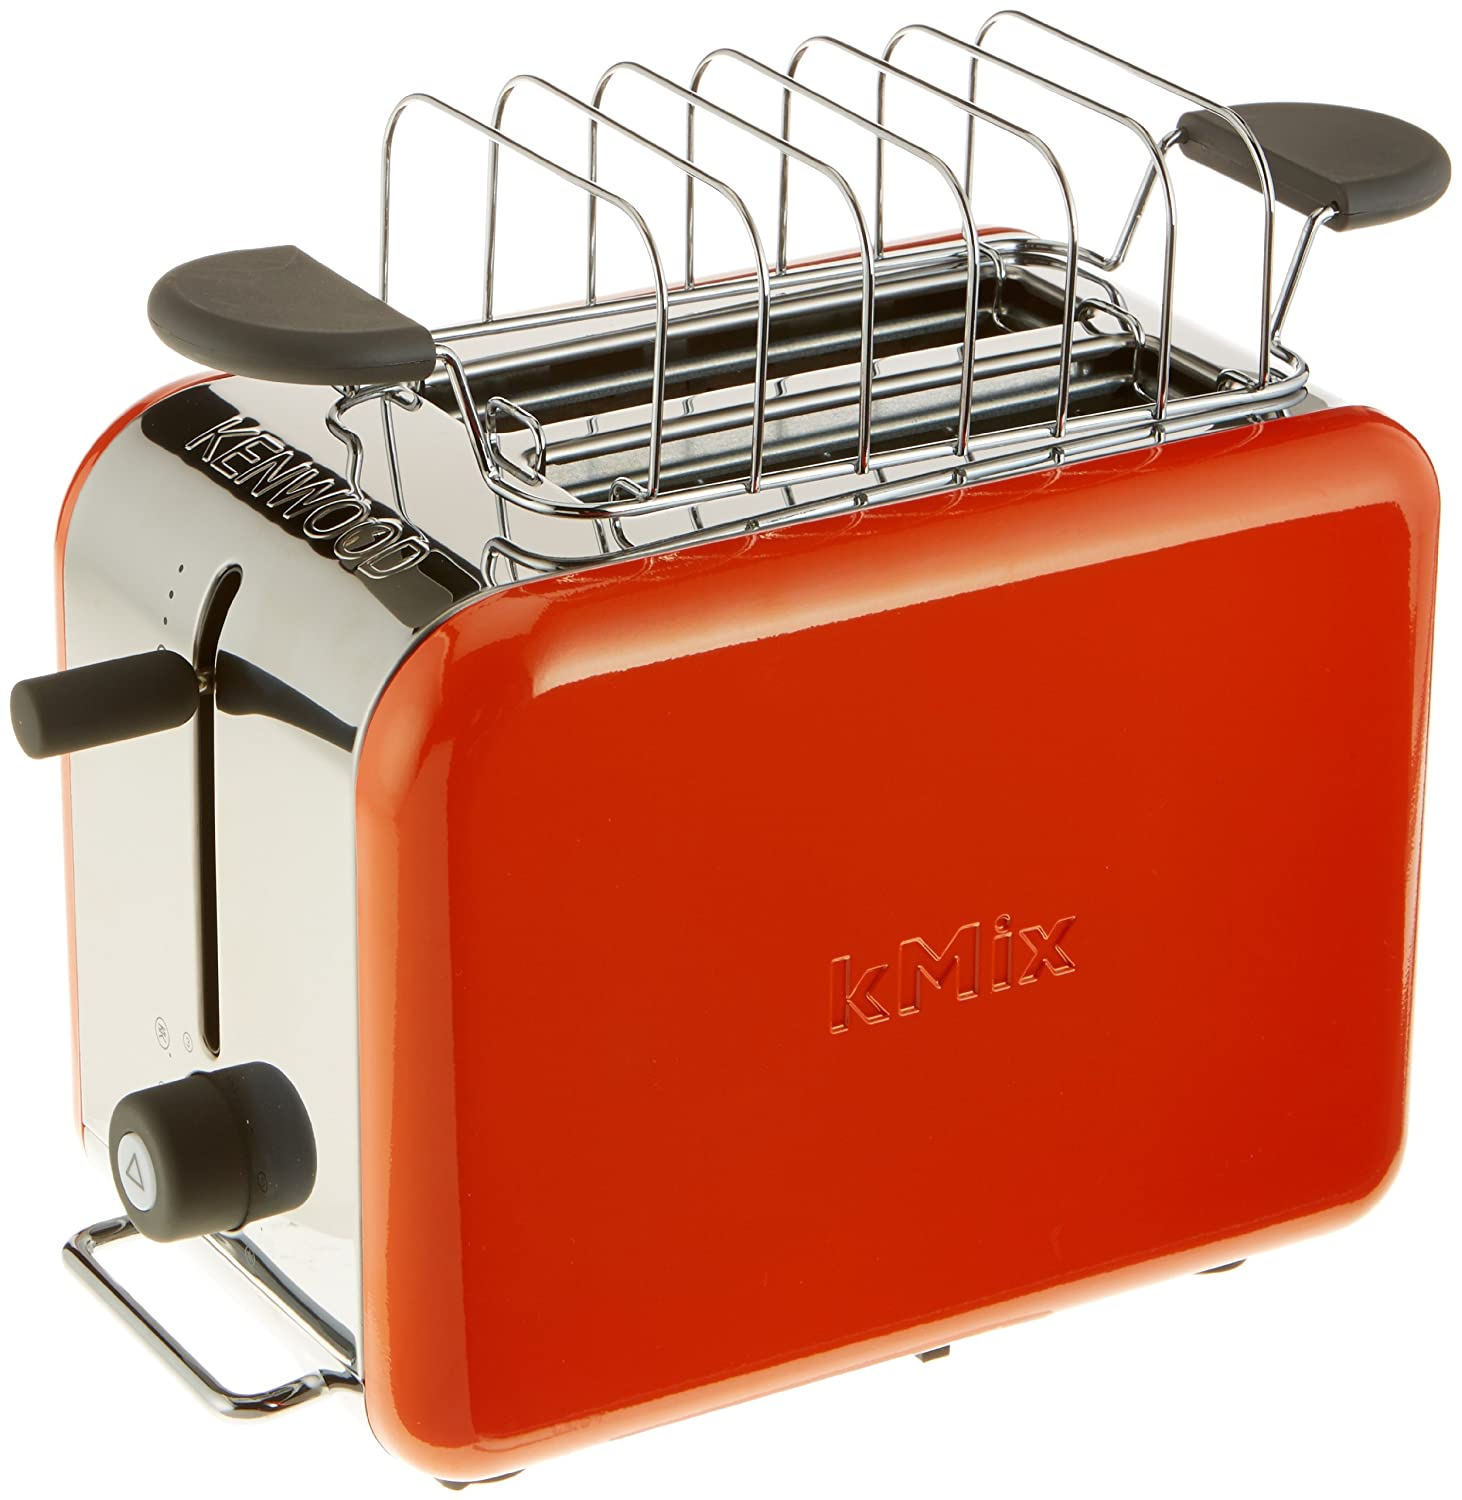 Kenwood KETTM027 K-mix Toaster 220-240 Volt/ 50-60 Hz (INTERNATIONAL VOLTAGE & PLUG) FOR OVERSEAS USE ONLY WILL NOT WORK IN THE US, OUR PRODUCT ARE BRAND NEW, WE DO NOT SELL USED OR REFERBUSHED PRODUCTS.